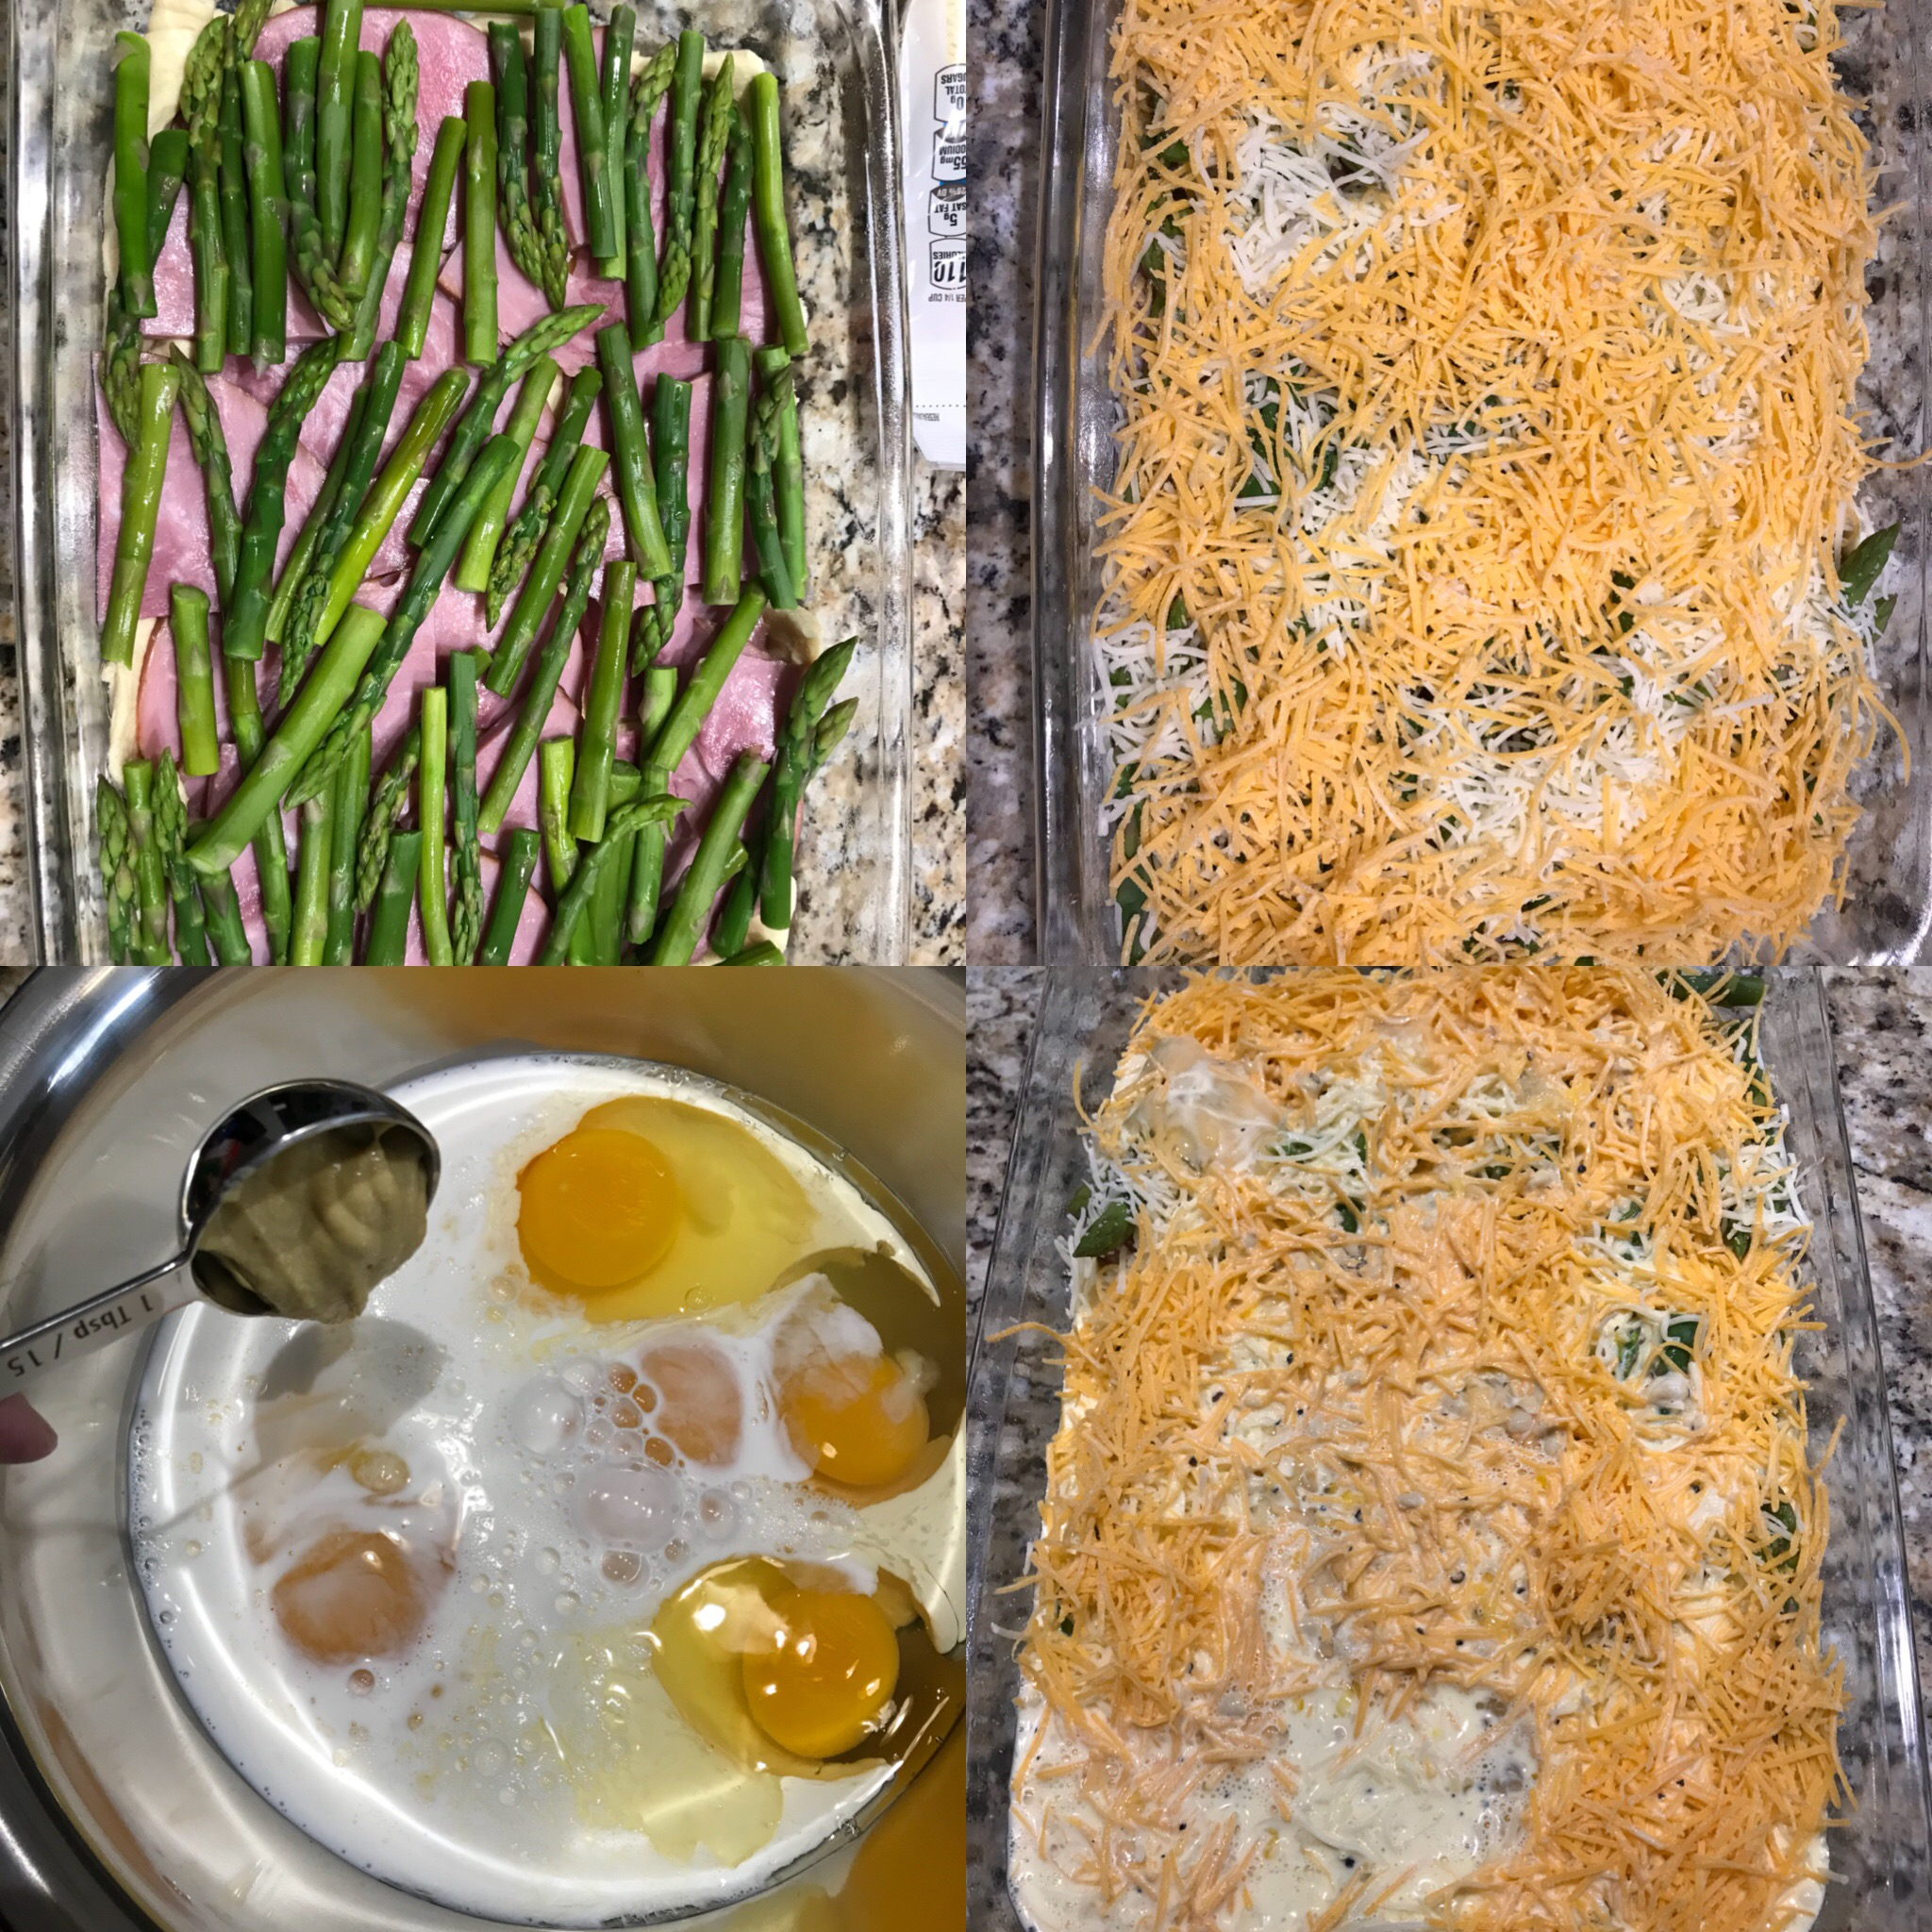 Monthly Recipe: Asparagus, Ham and Cheese Croissant Bake